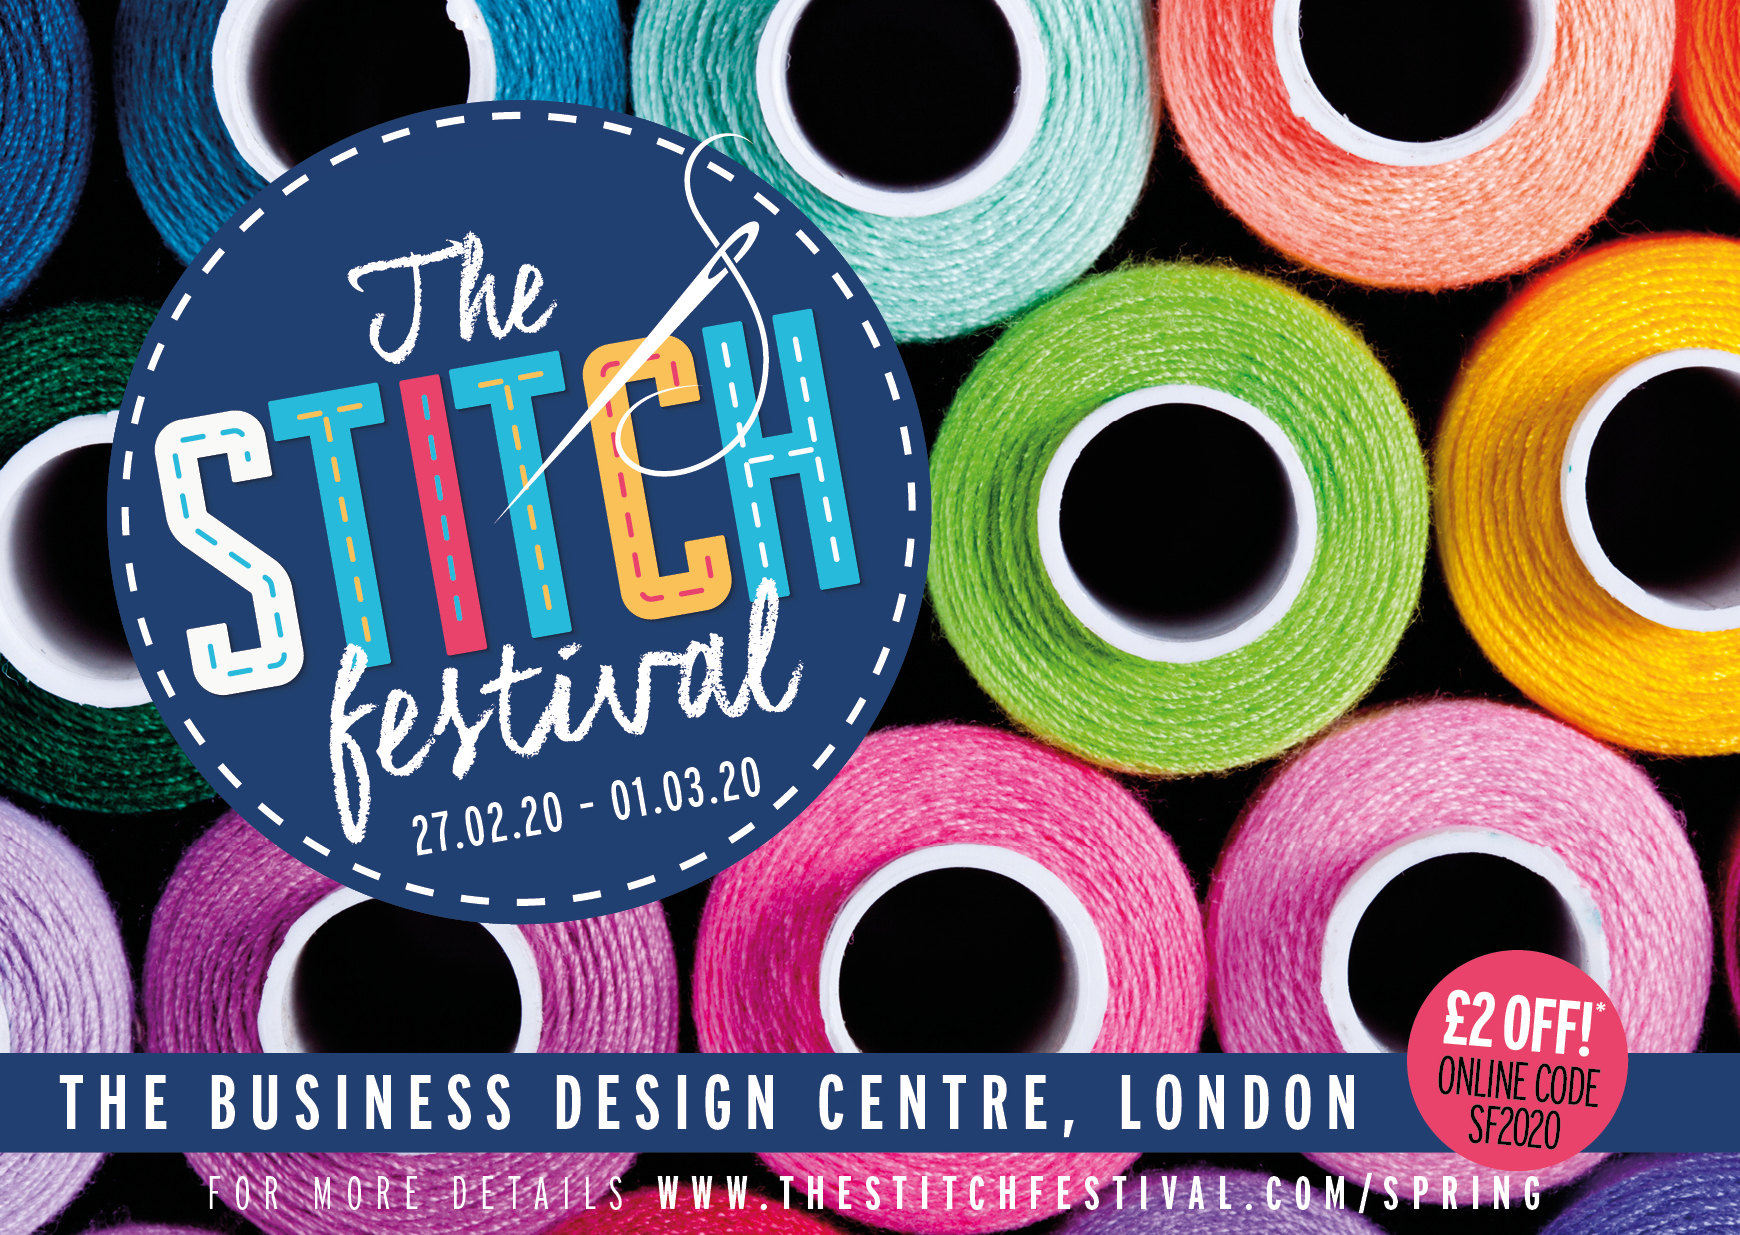 THE STITCH FESTIVAL: A6 LEAFLET